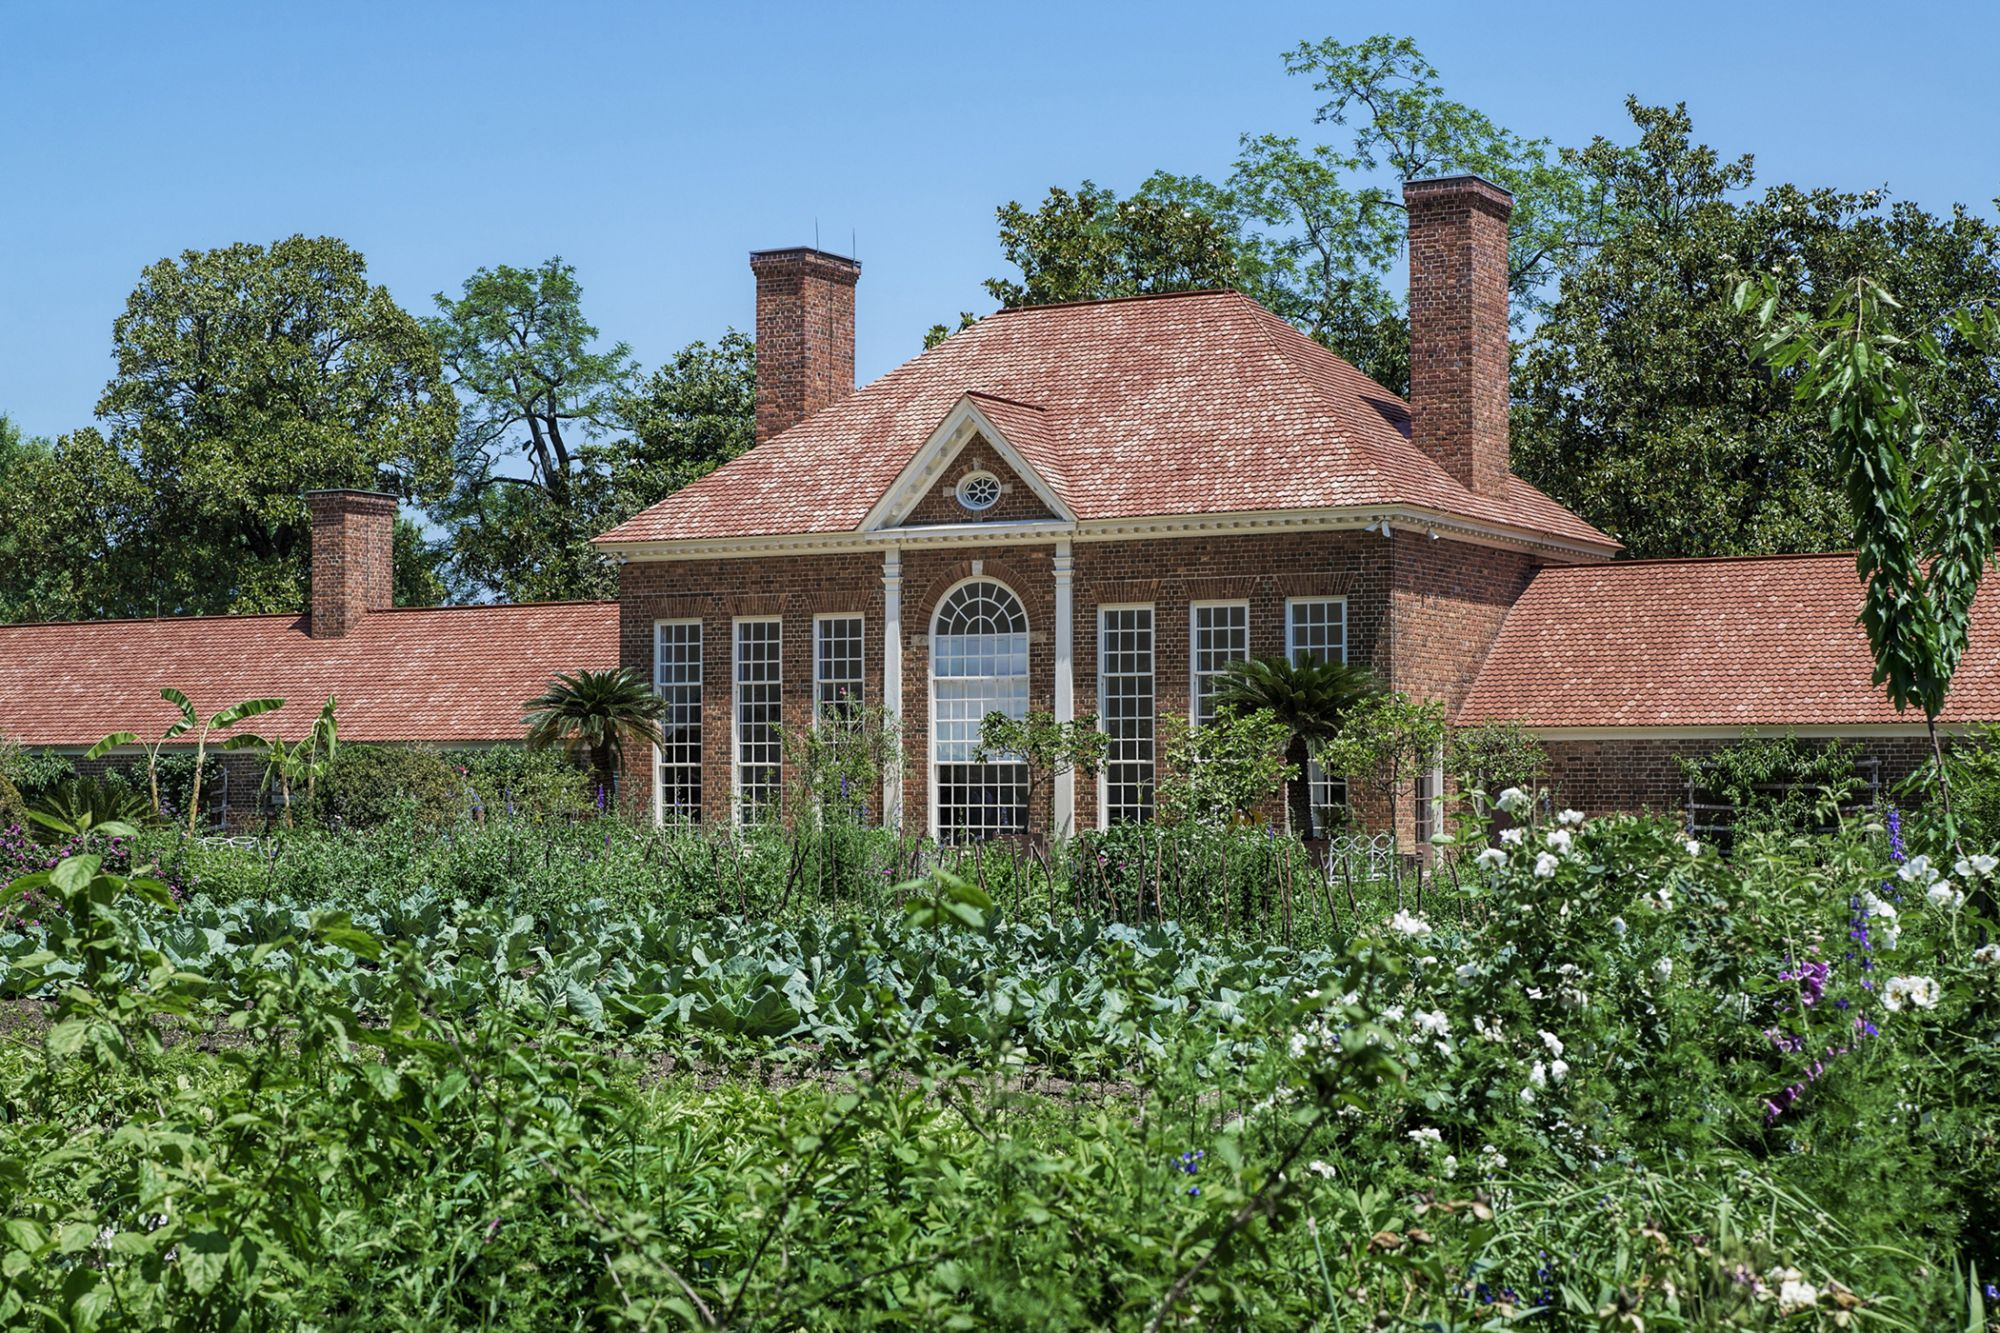 Legal Hemp Is Being Planted at George Washington's Historic Estate for the First Time in 200 Years